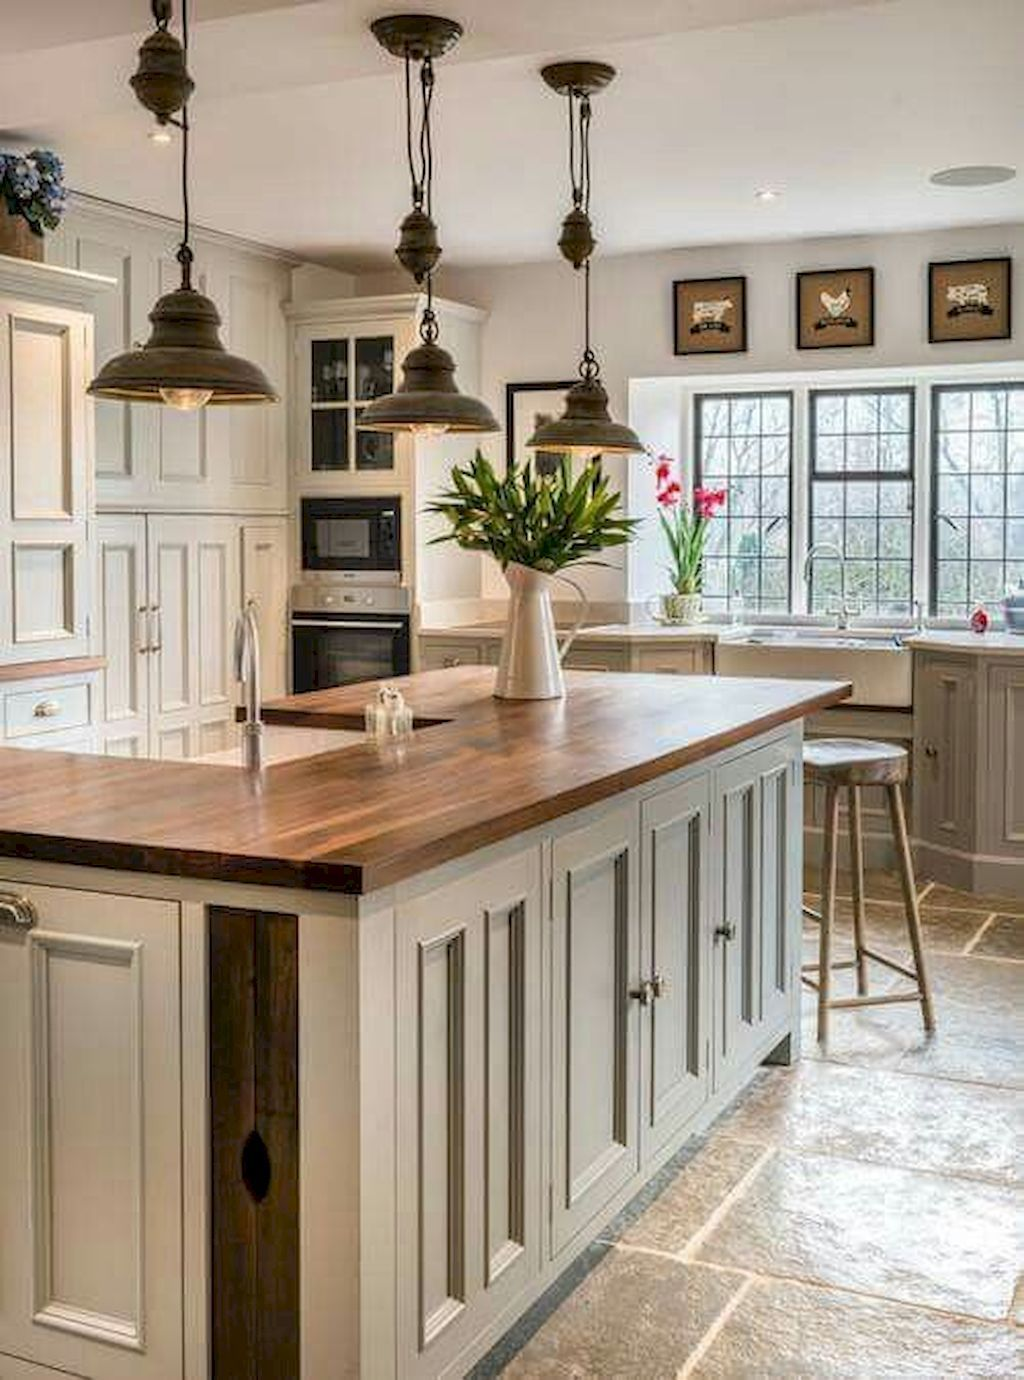 modern farmhouse kitchen design. Nice 40 Rustic Modern Farmhouse Kitchen Design Ideas  Https://lovelyving.com/2017/09/06/40-rustic-farmhouse-kitchen-design-ideas/ Modern Farmhouse Kitchen Design